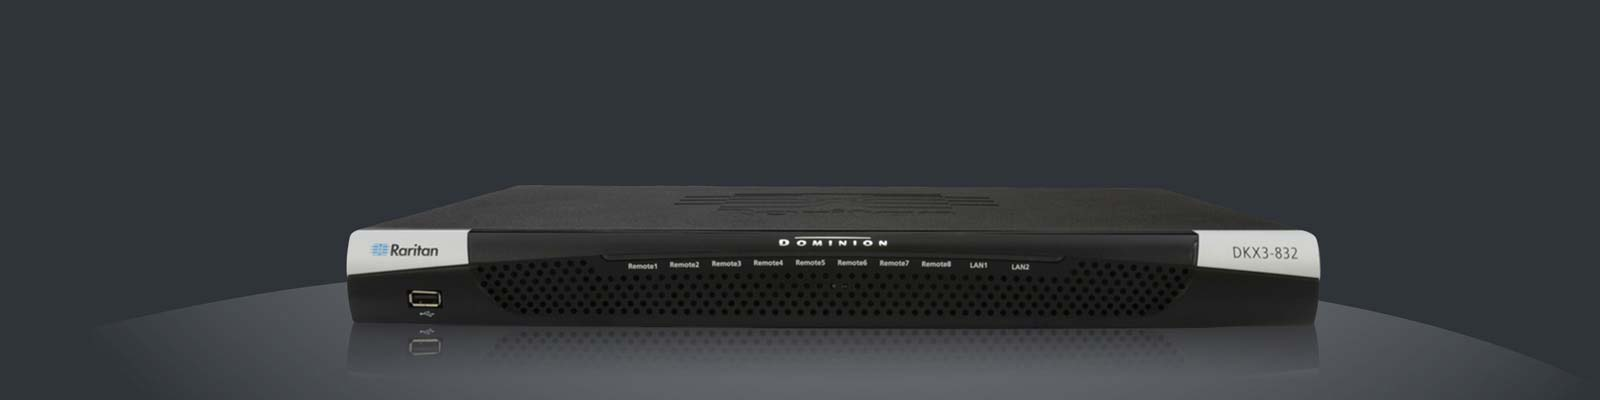 Raritan Dominion DKX3 Dual-Monitor VGA KVM Over IP Switch - Virtual Media, Military grade security